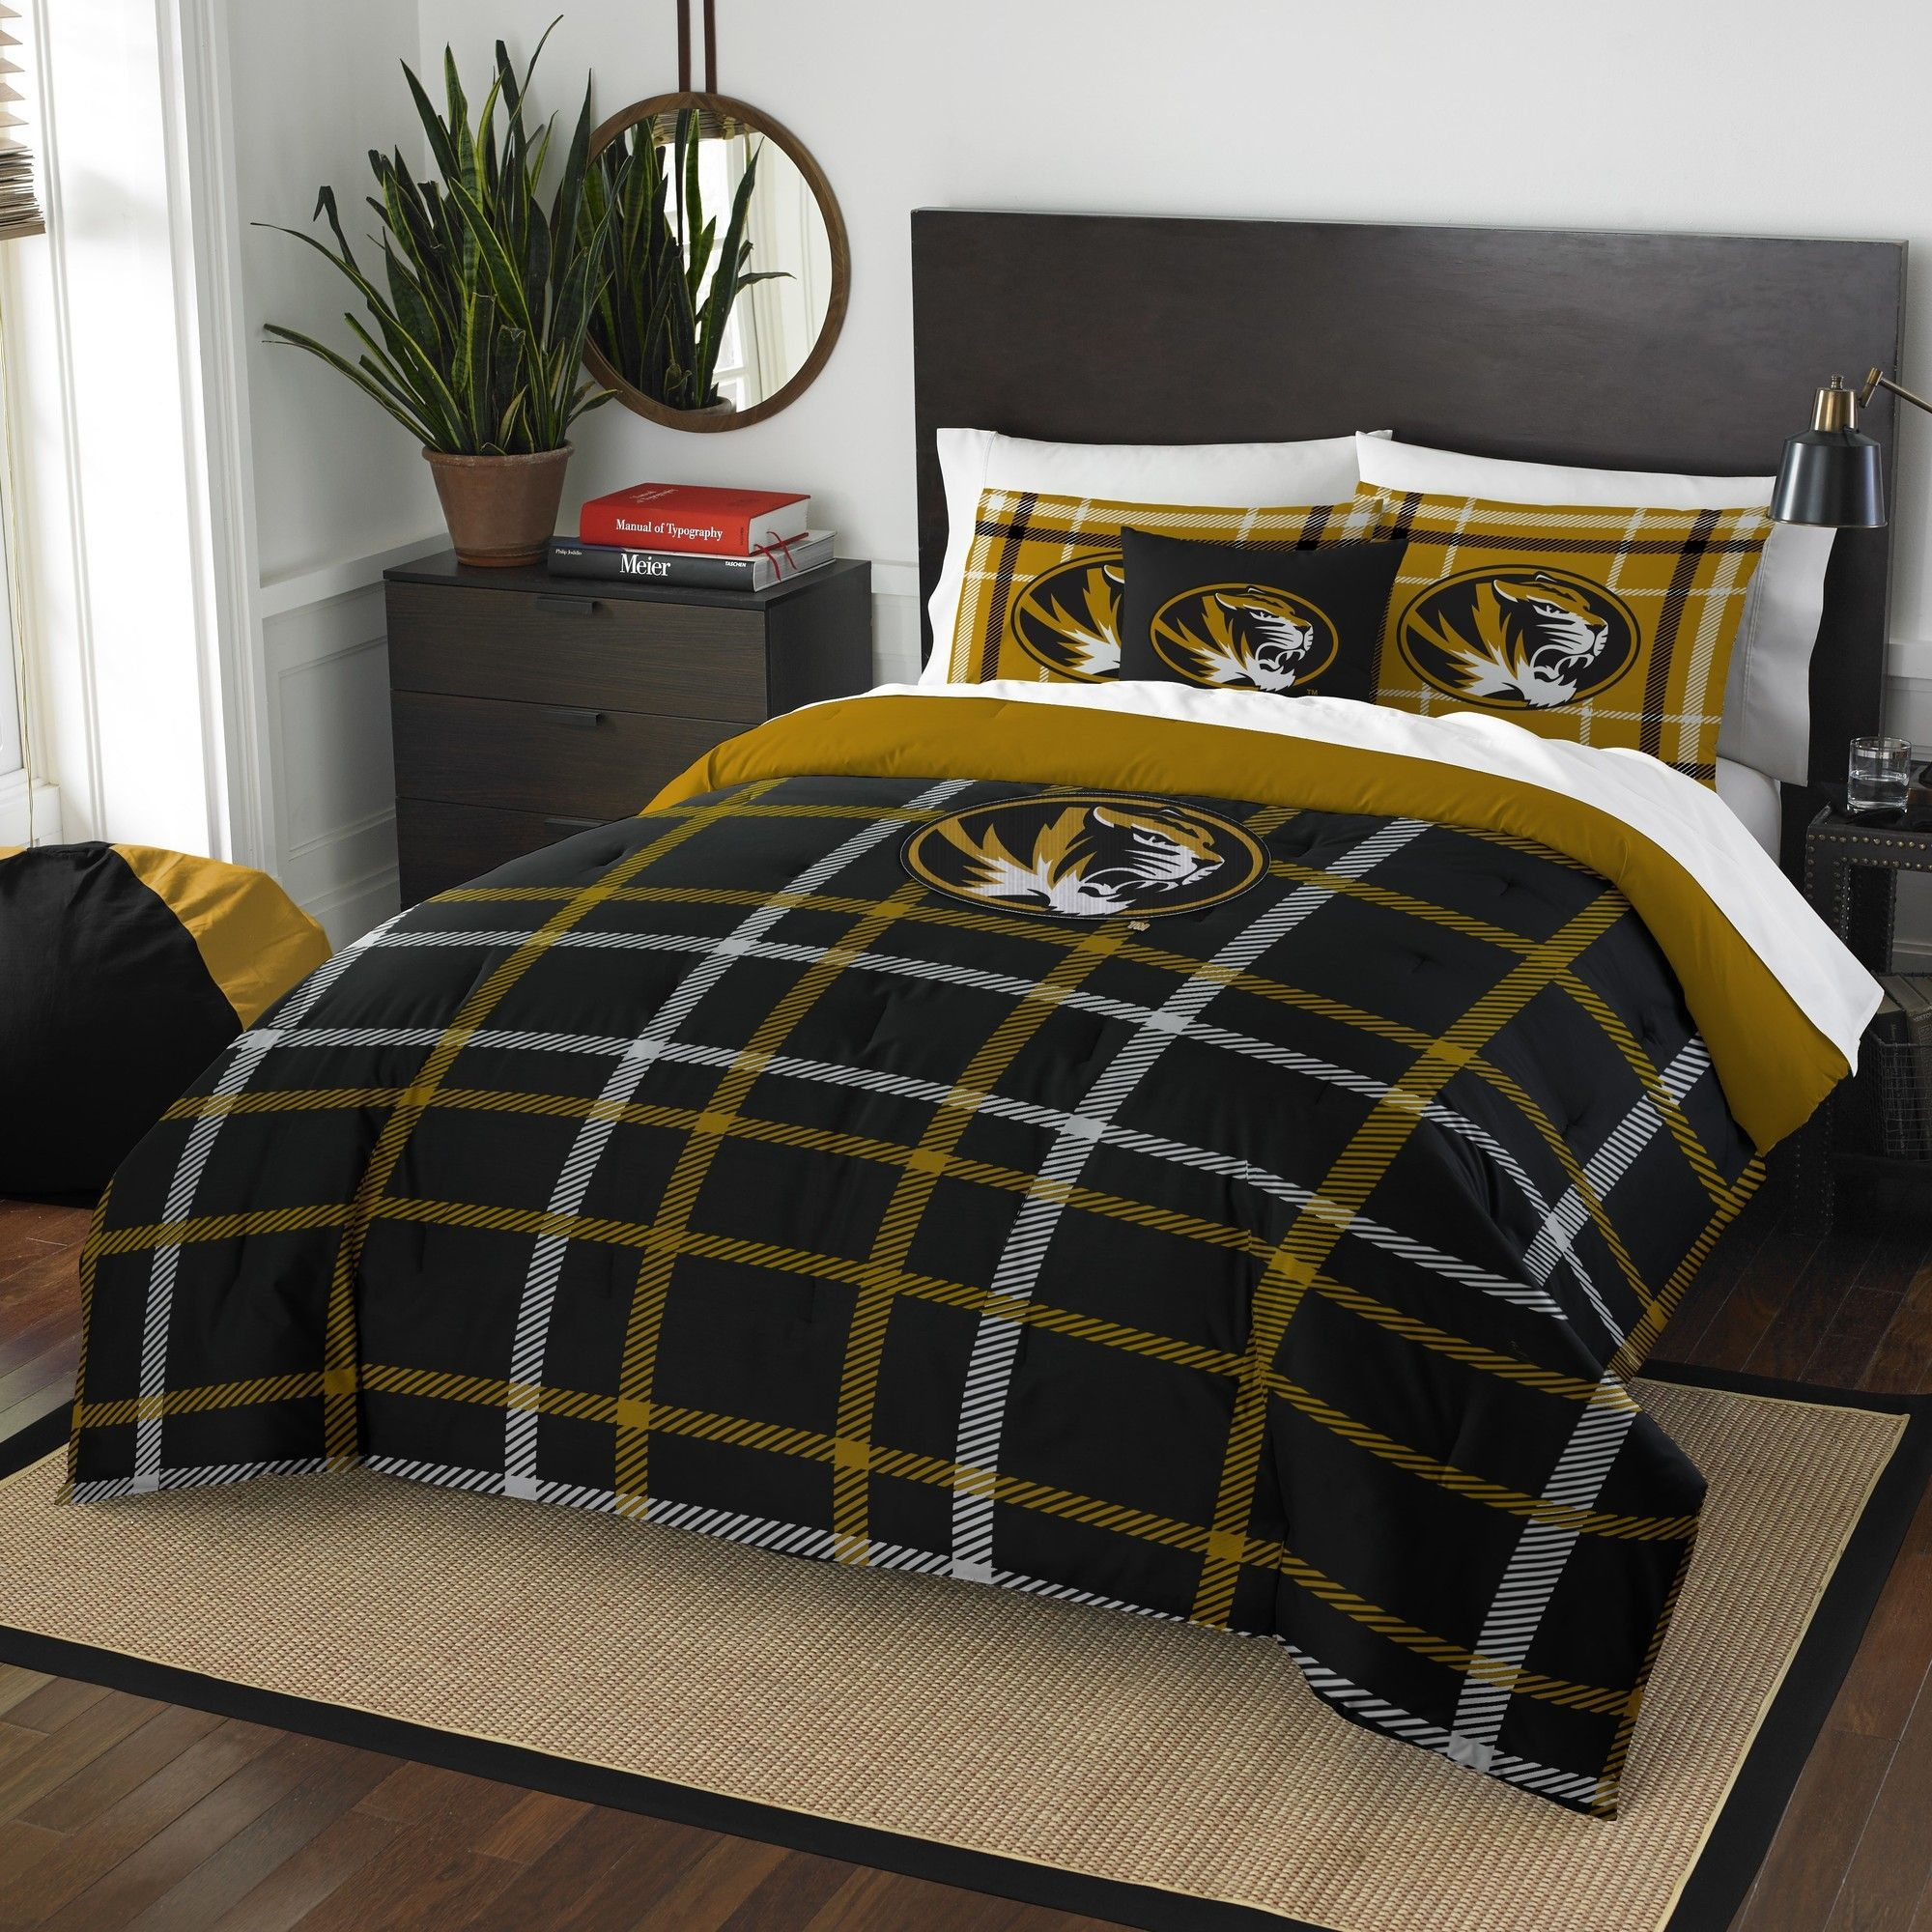 Prove You Are The Fan With This Comforter Bed Set